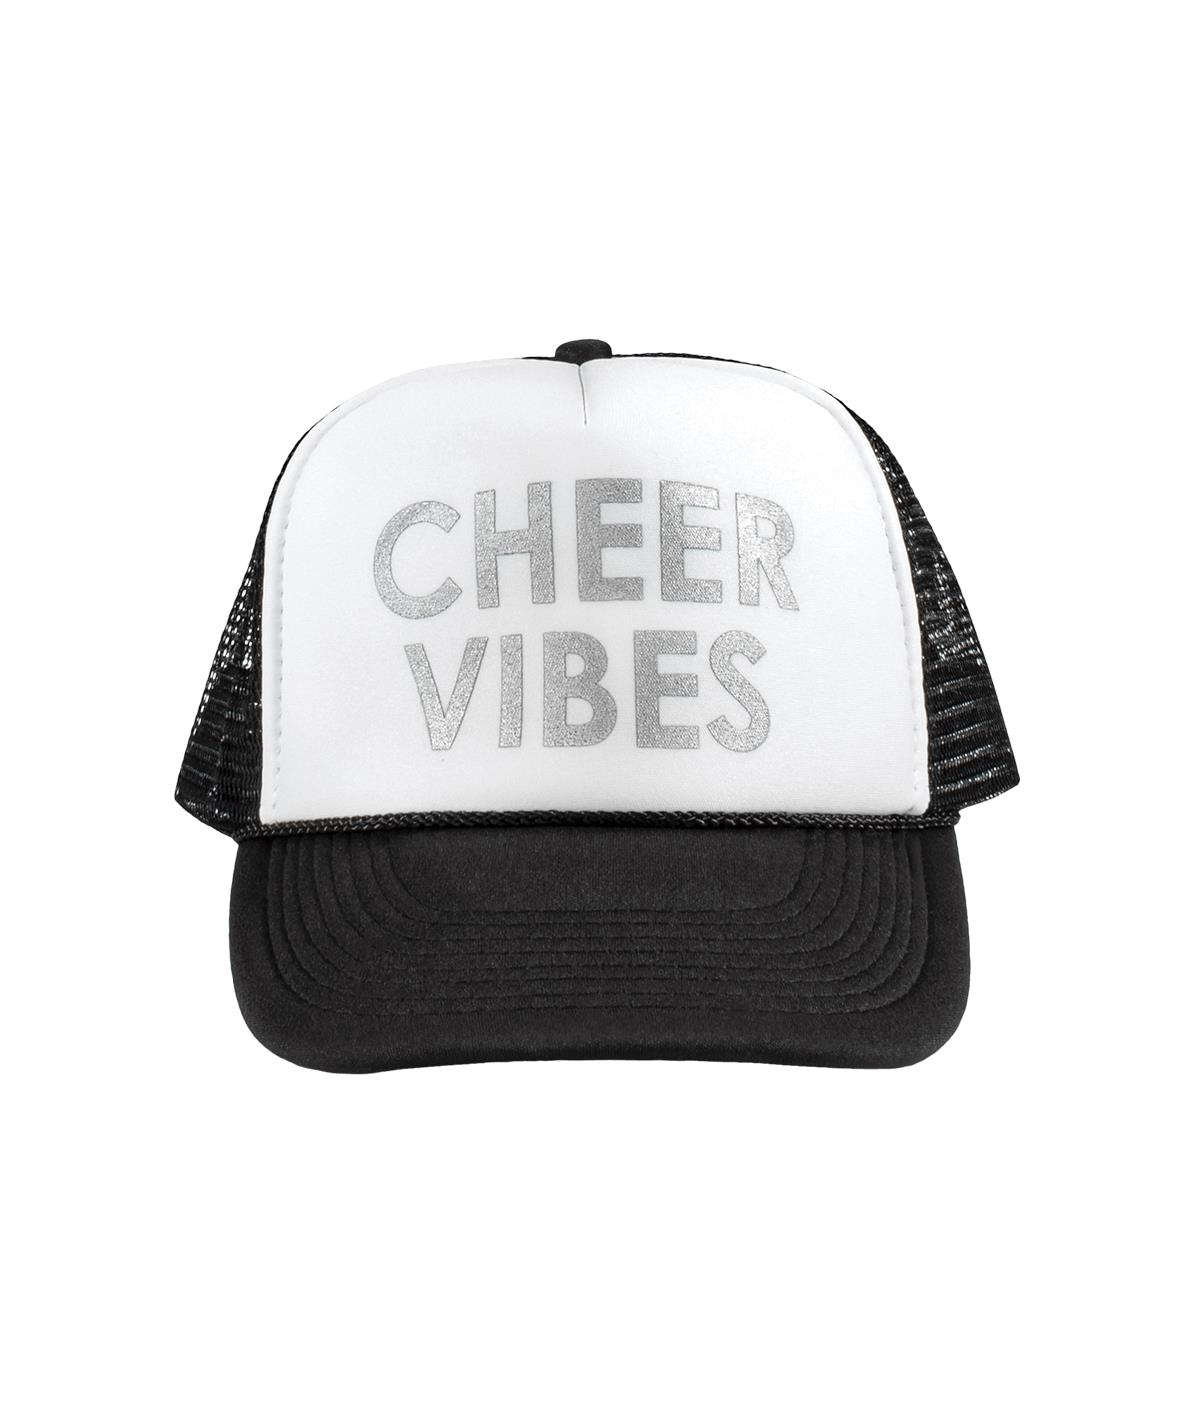 Chassé Cheer Vibes Trucker Hat